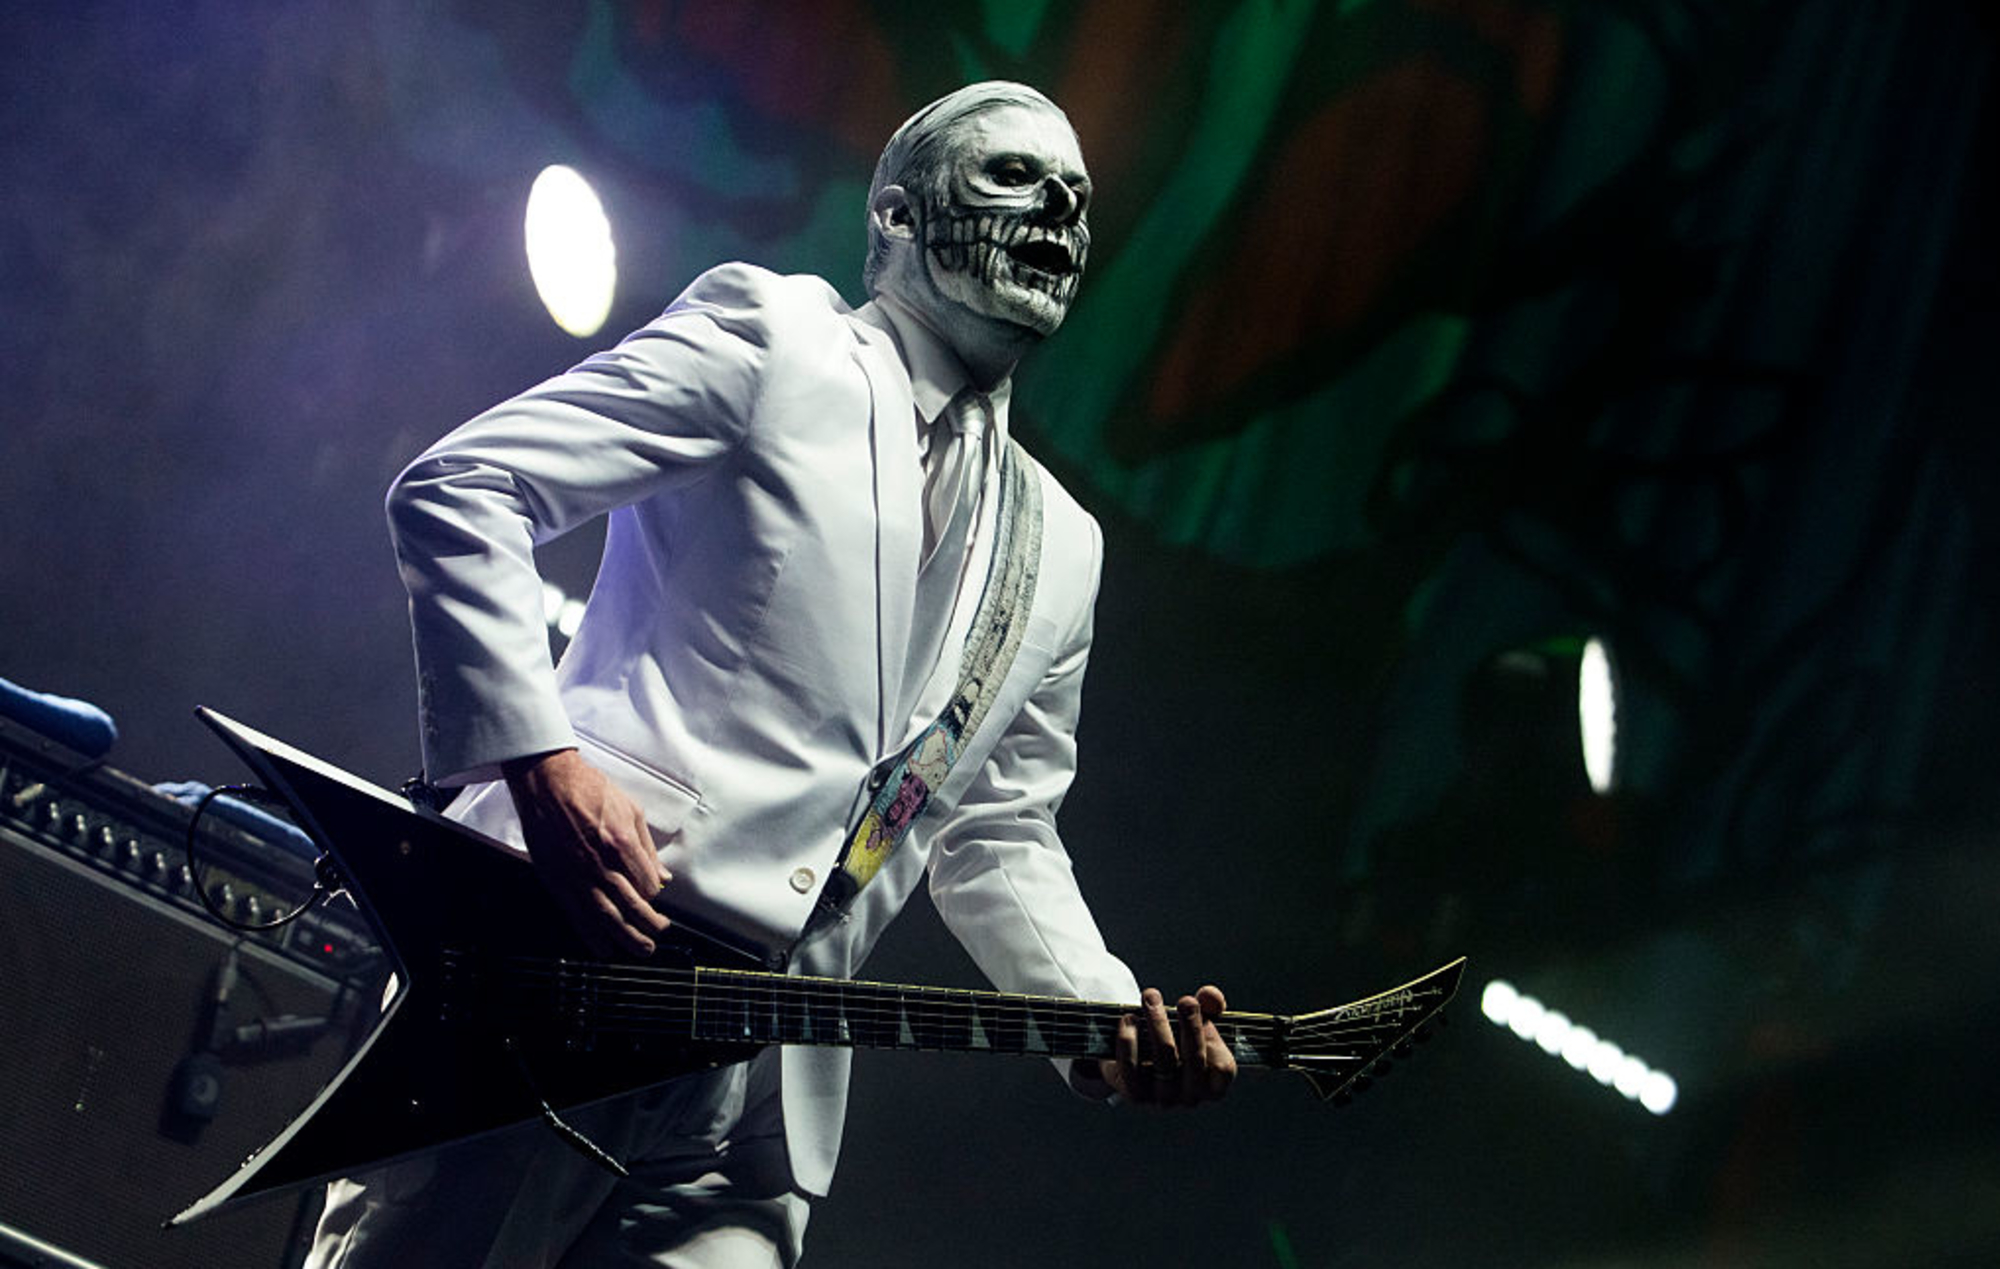 Limp Bizkit's Wes Borland to release demos from shelved Eat the Day project - EpicNews